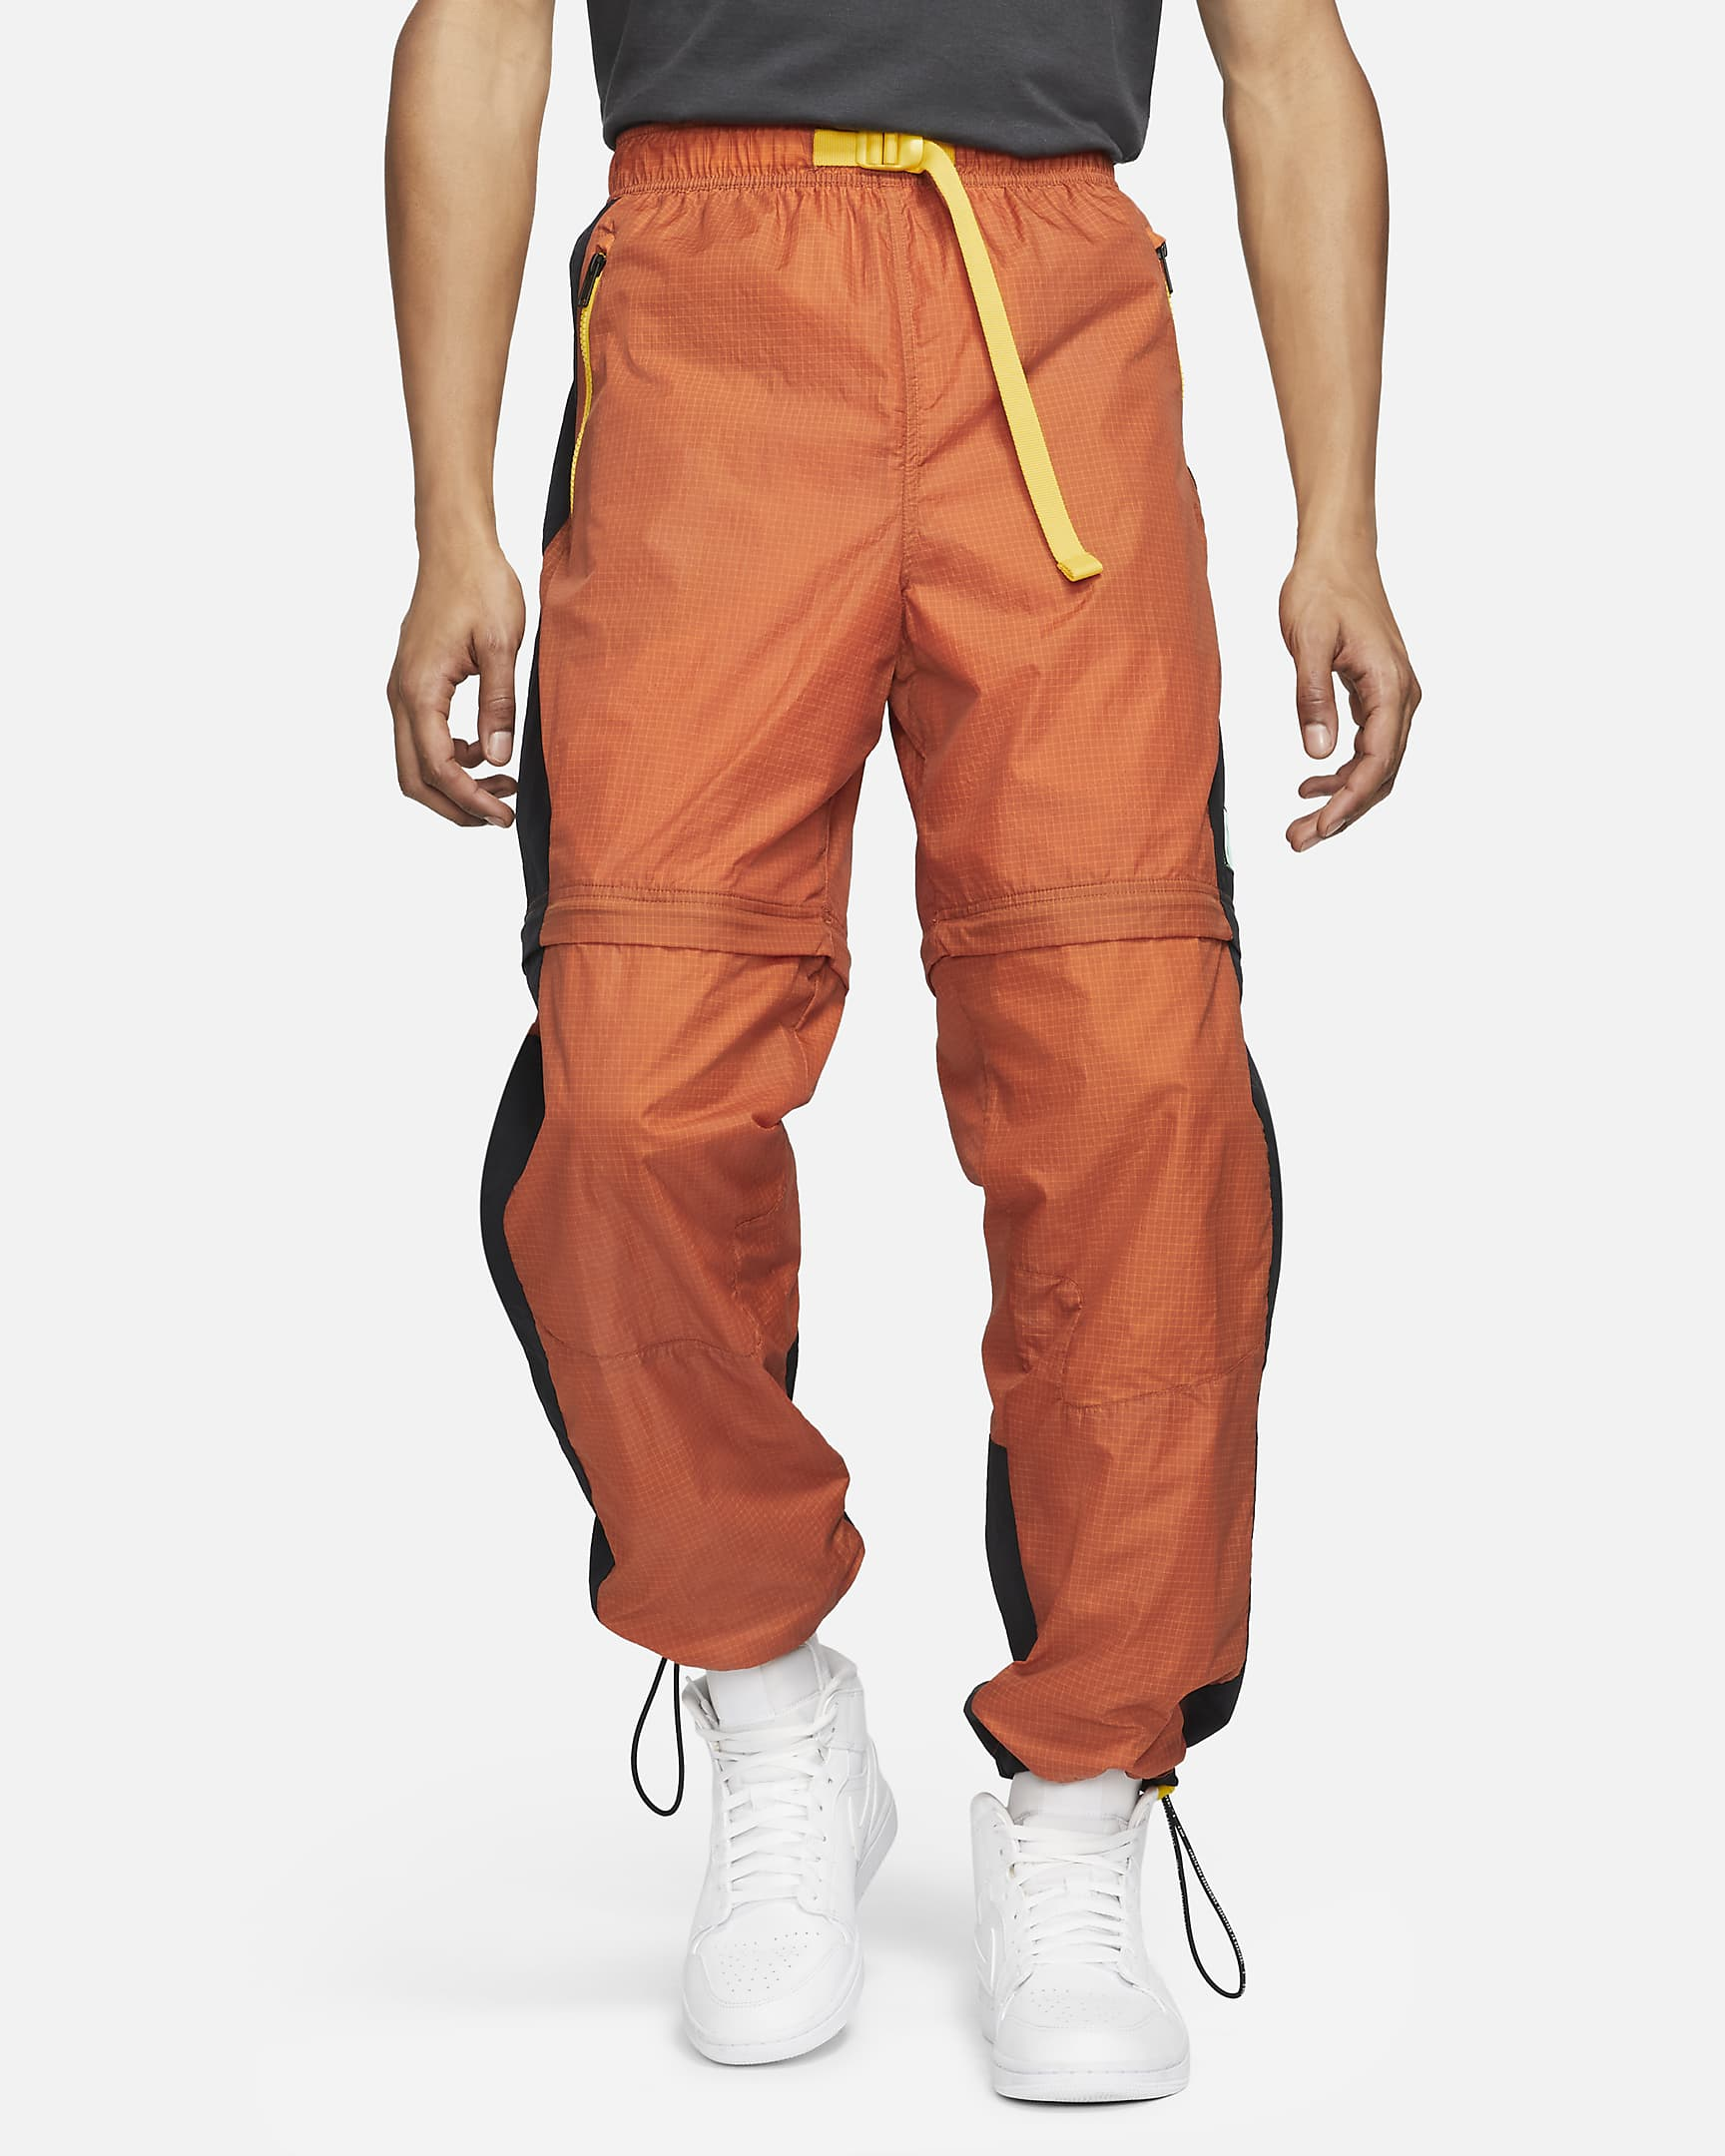 jordan-23-engineered-mens-convertible-track-pants-zWp7wJ